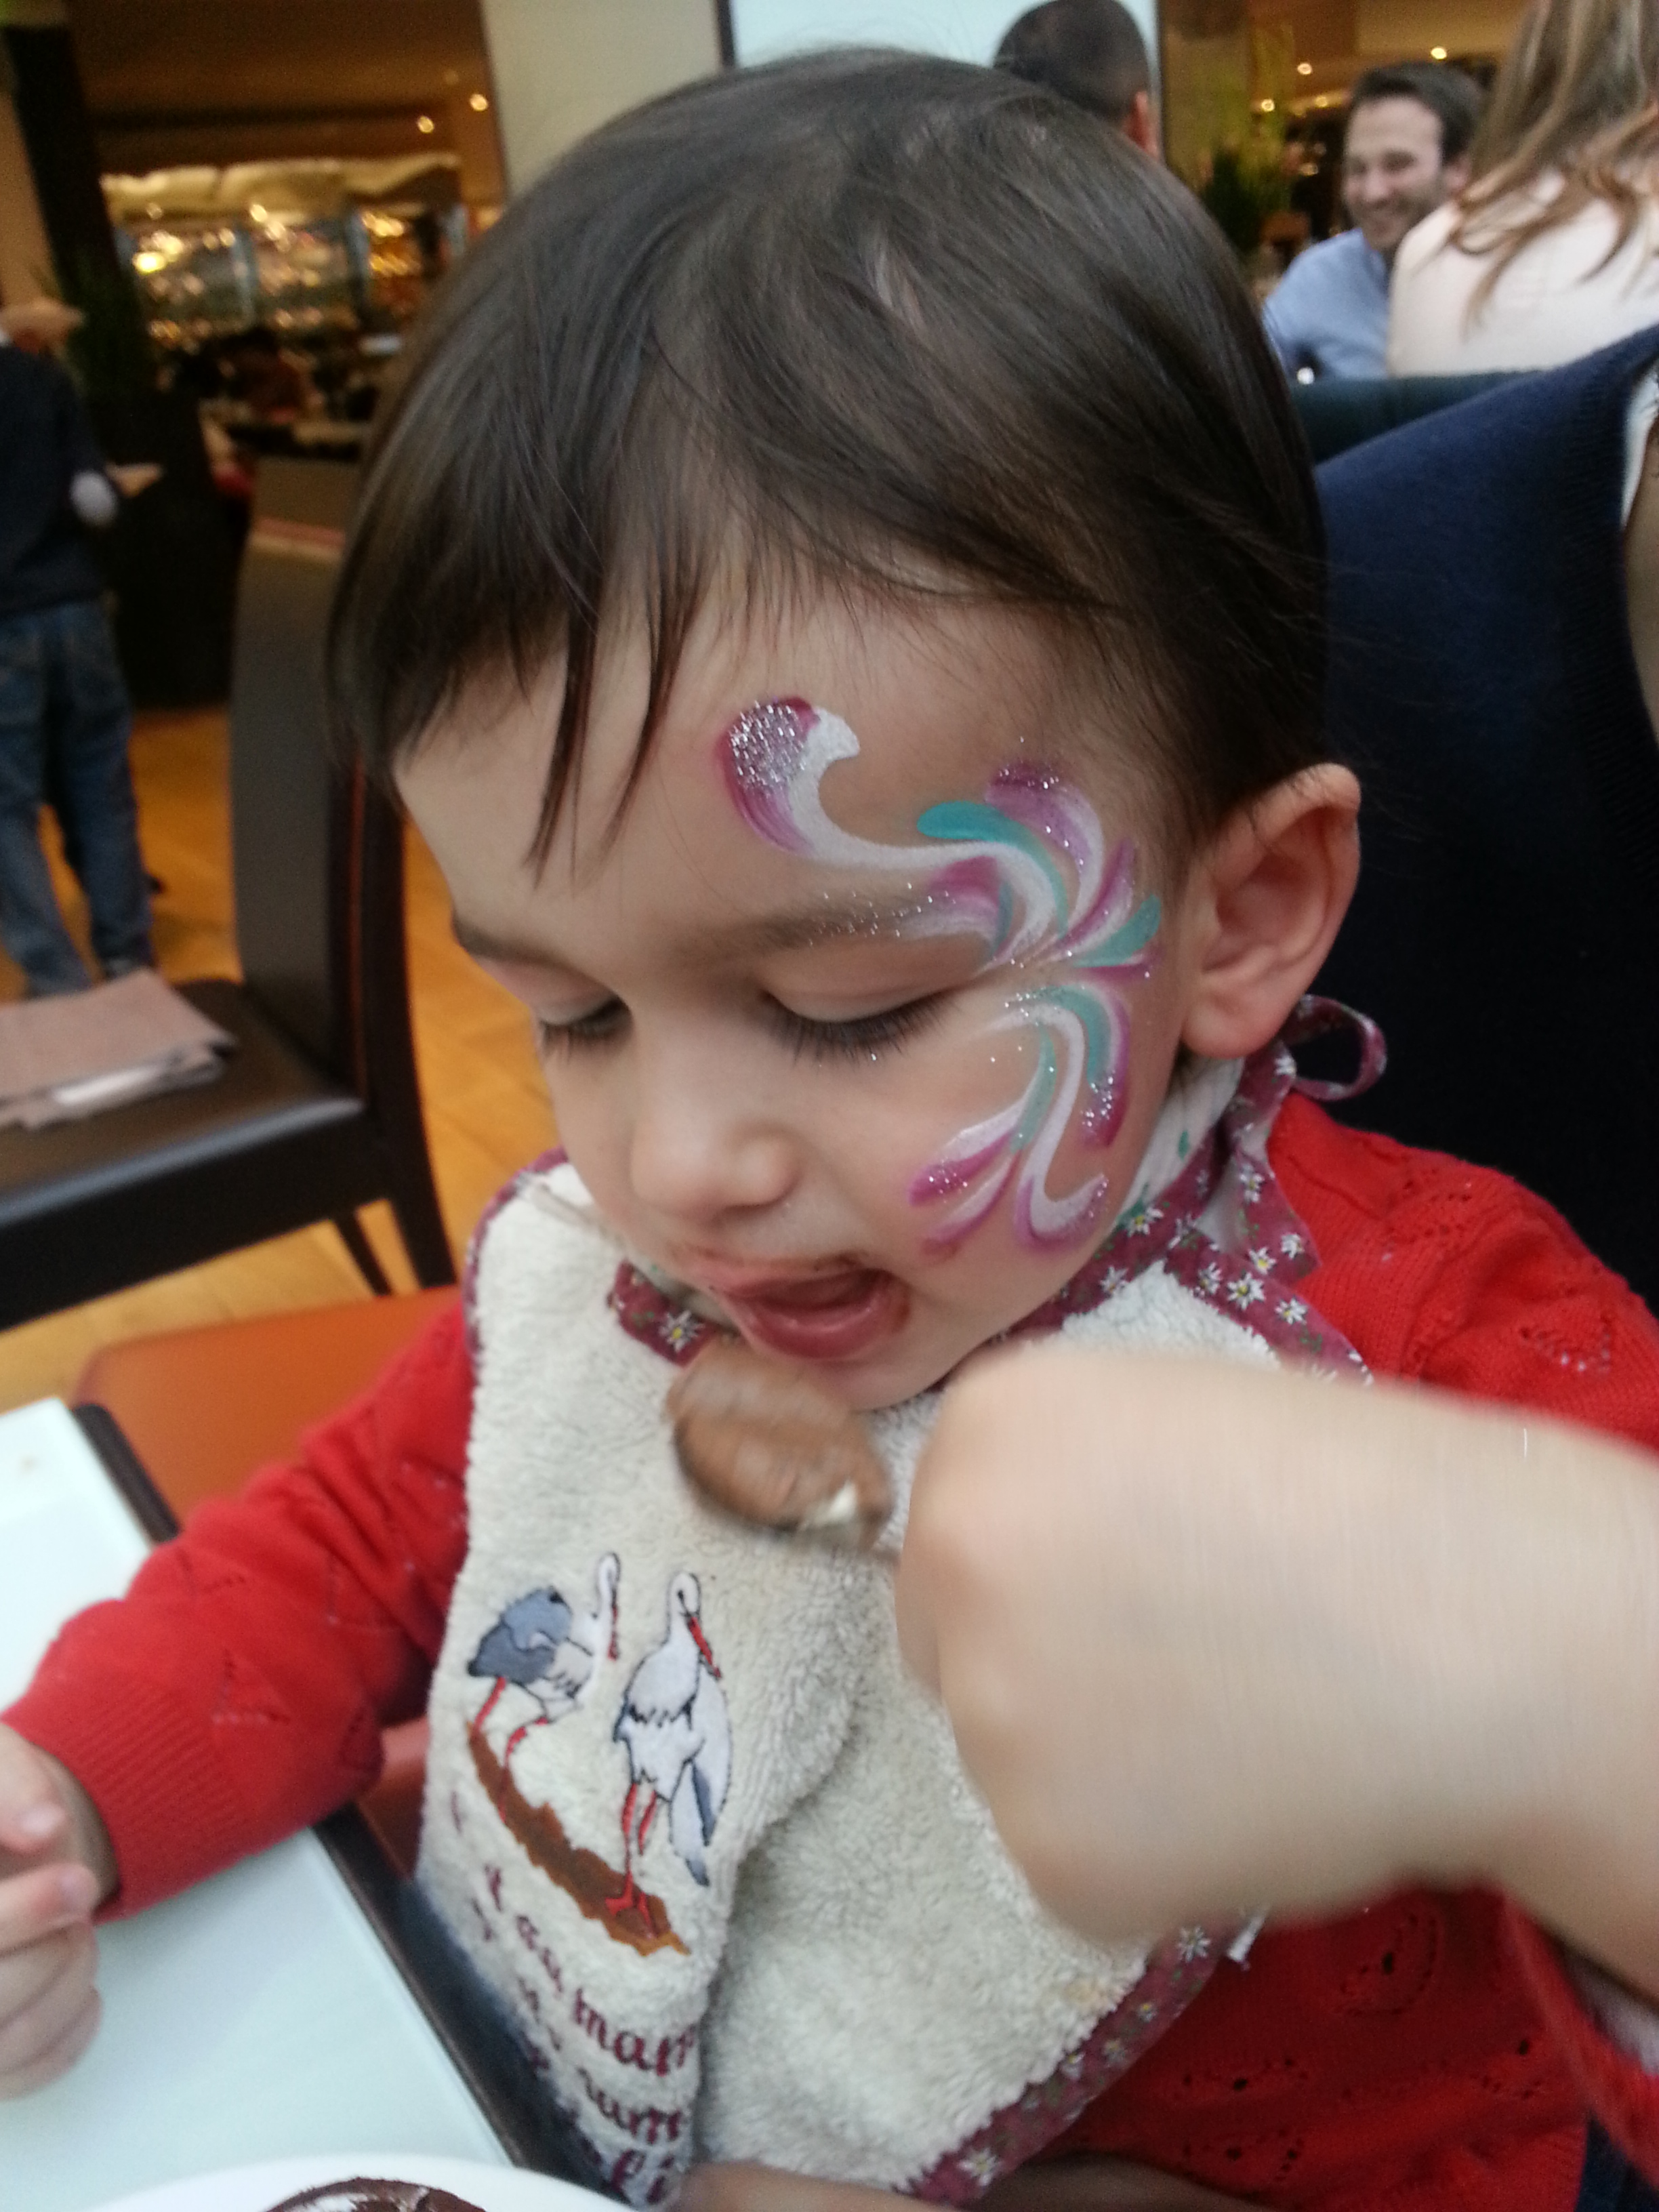 Maquillage au baby brunch